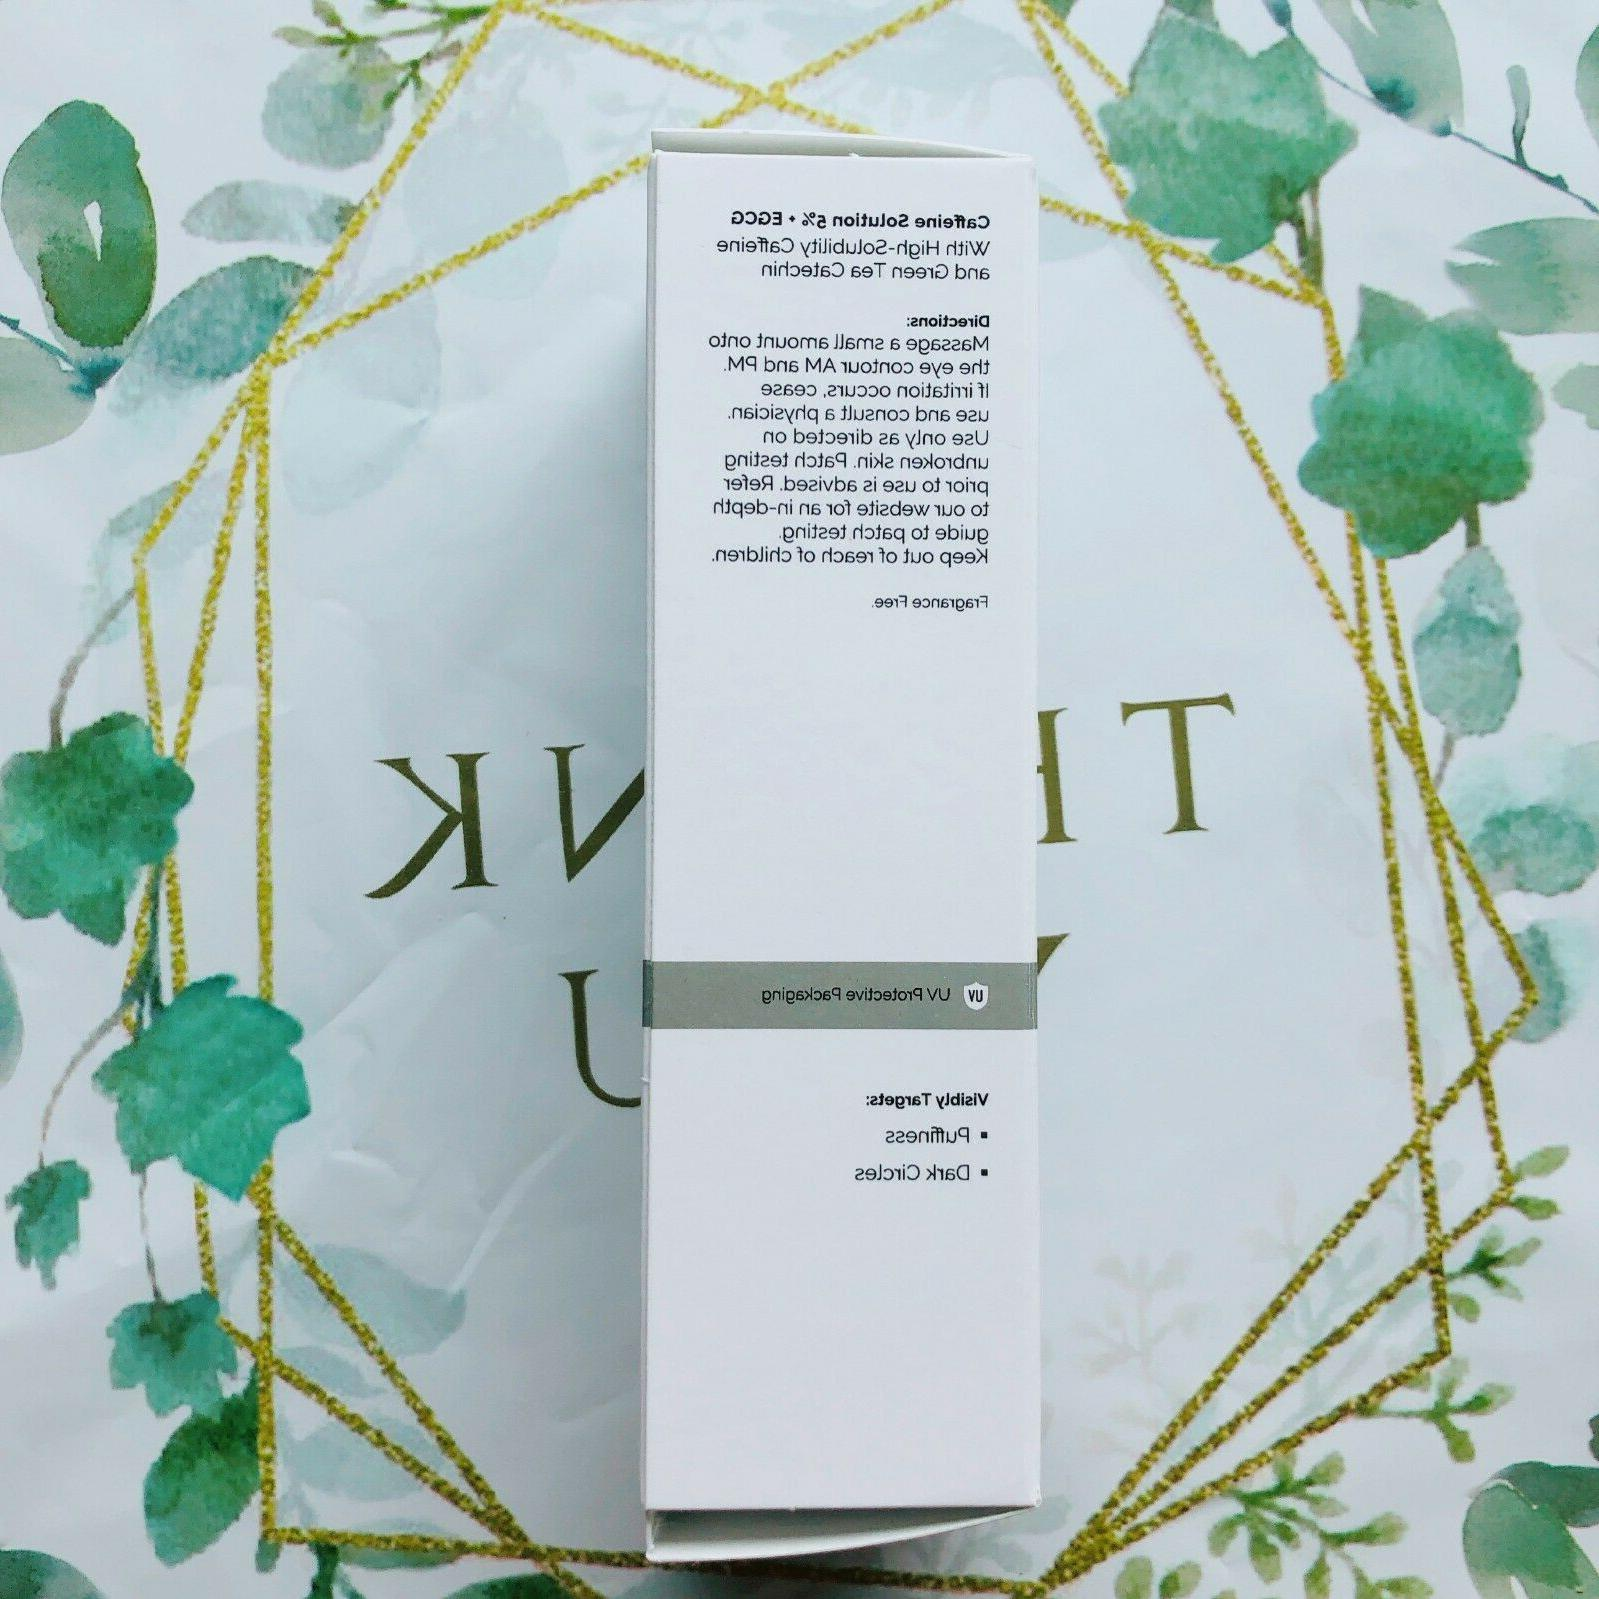 THE ORDINARY 5% EGCG 30ml in Box with